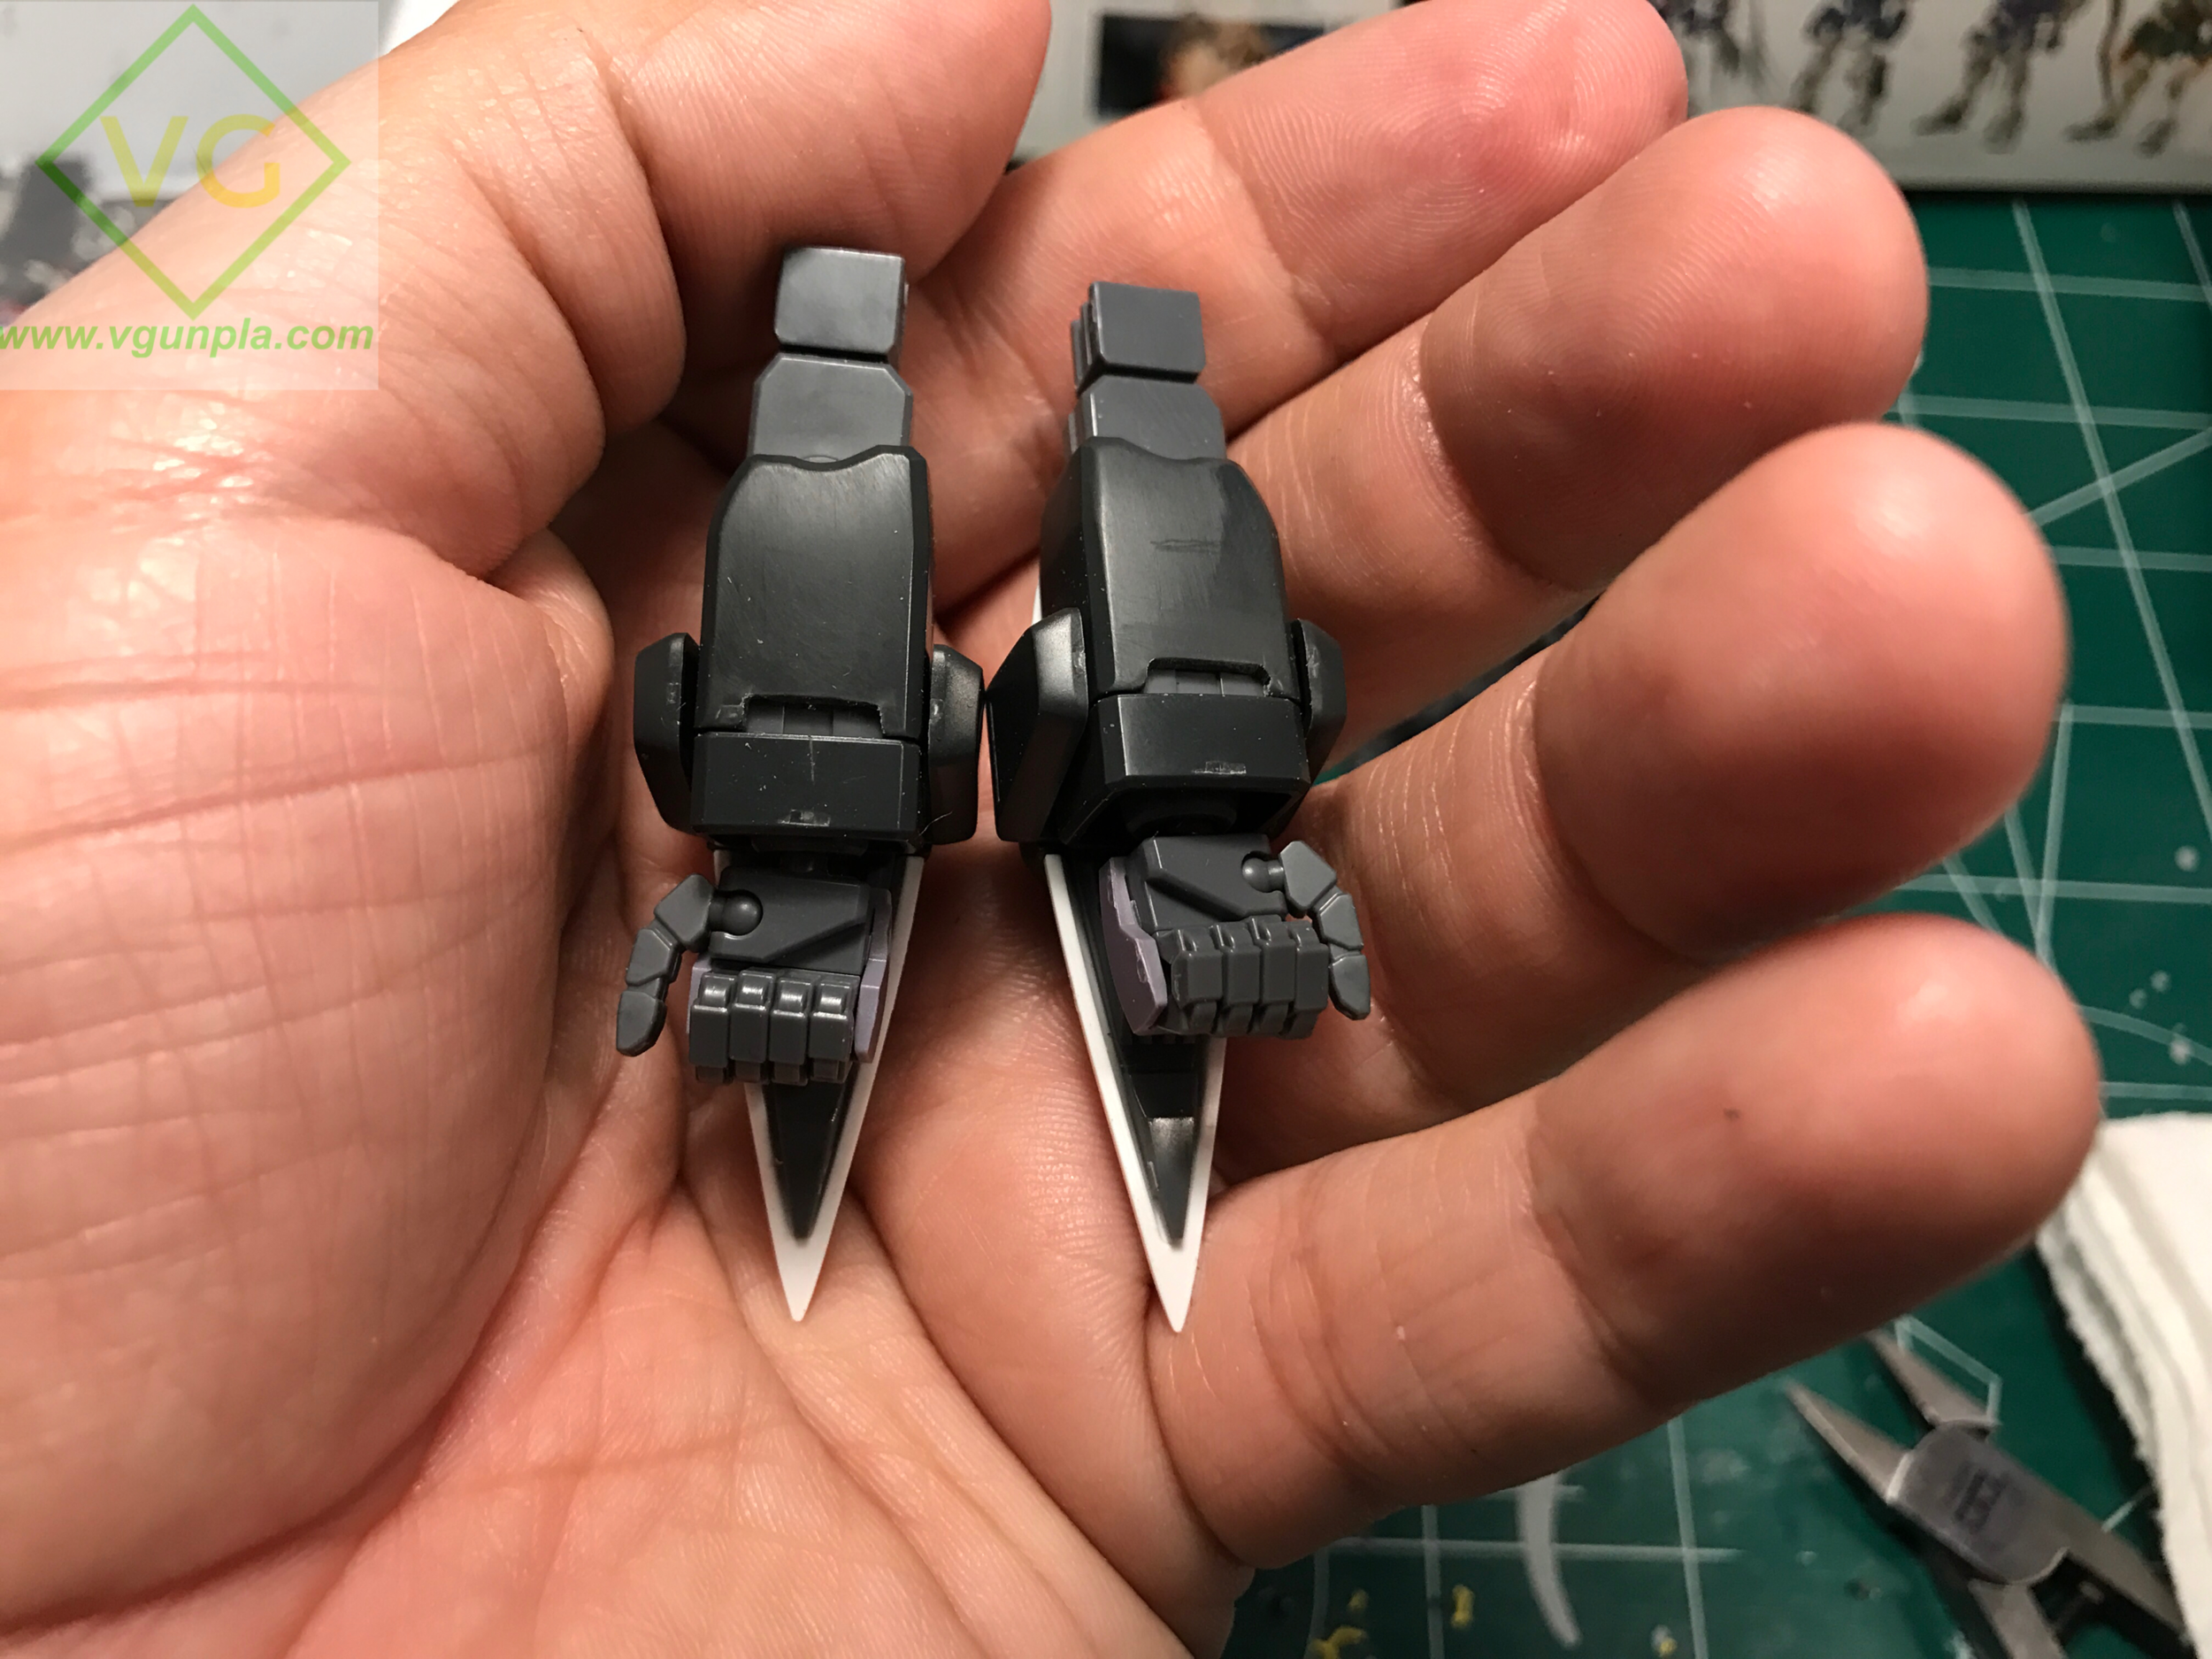 I tried a little armor separation here. For this section I drew lines with a pencil where I wanted to cut away (that little rectangular gap between the cuff and the arm armor), then cut the plastic with my nippers and cleaned it up with a file, then hobby knife, then sanding. This adds breaks up the flat area above the hands and also gives a look at the inner frame.